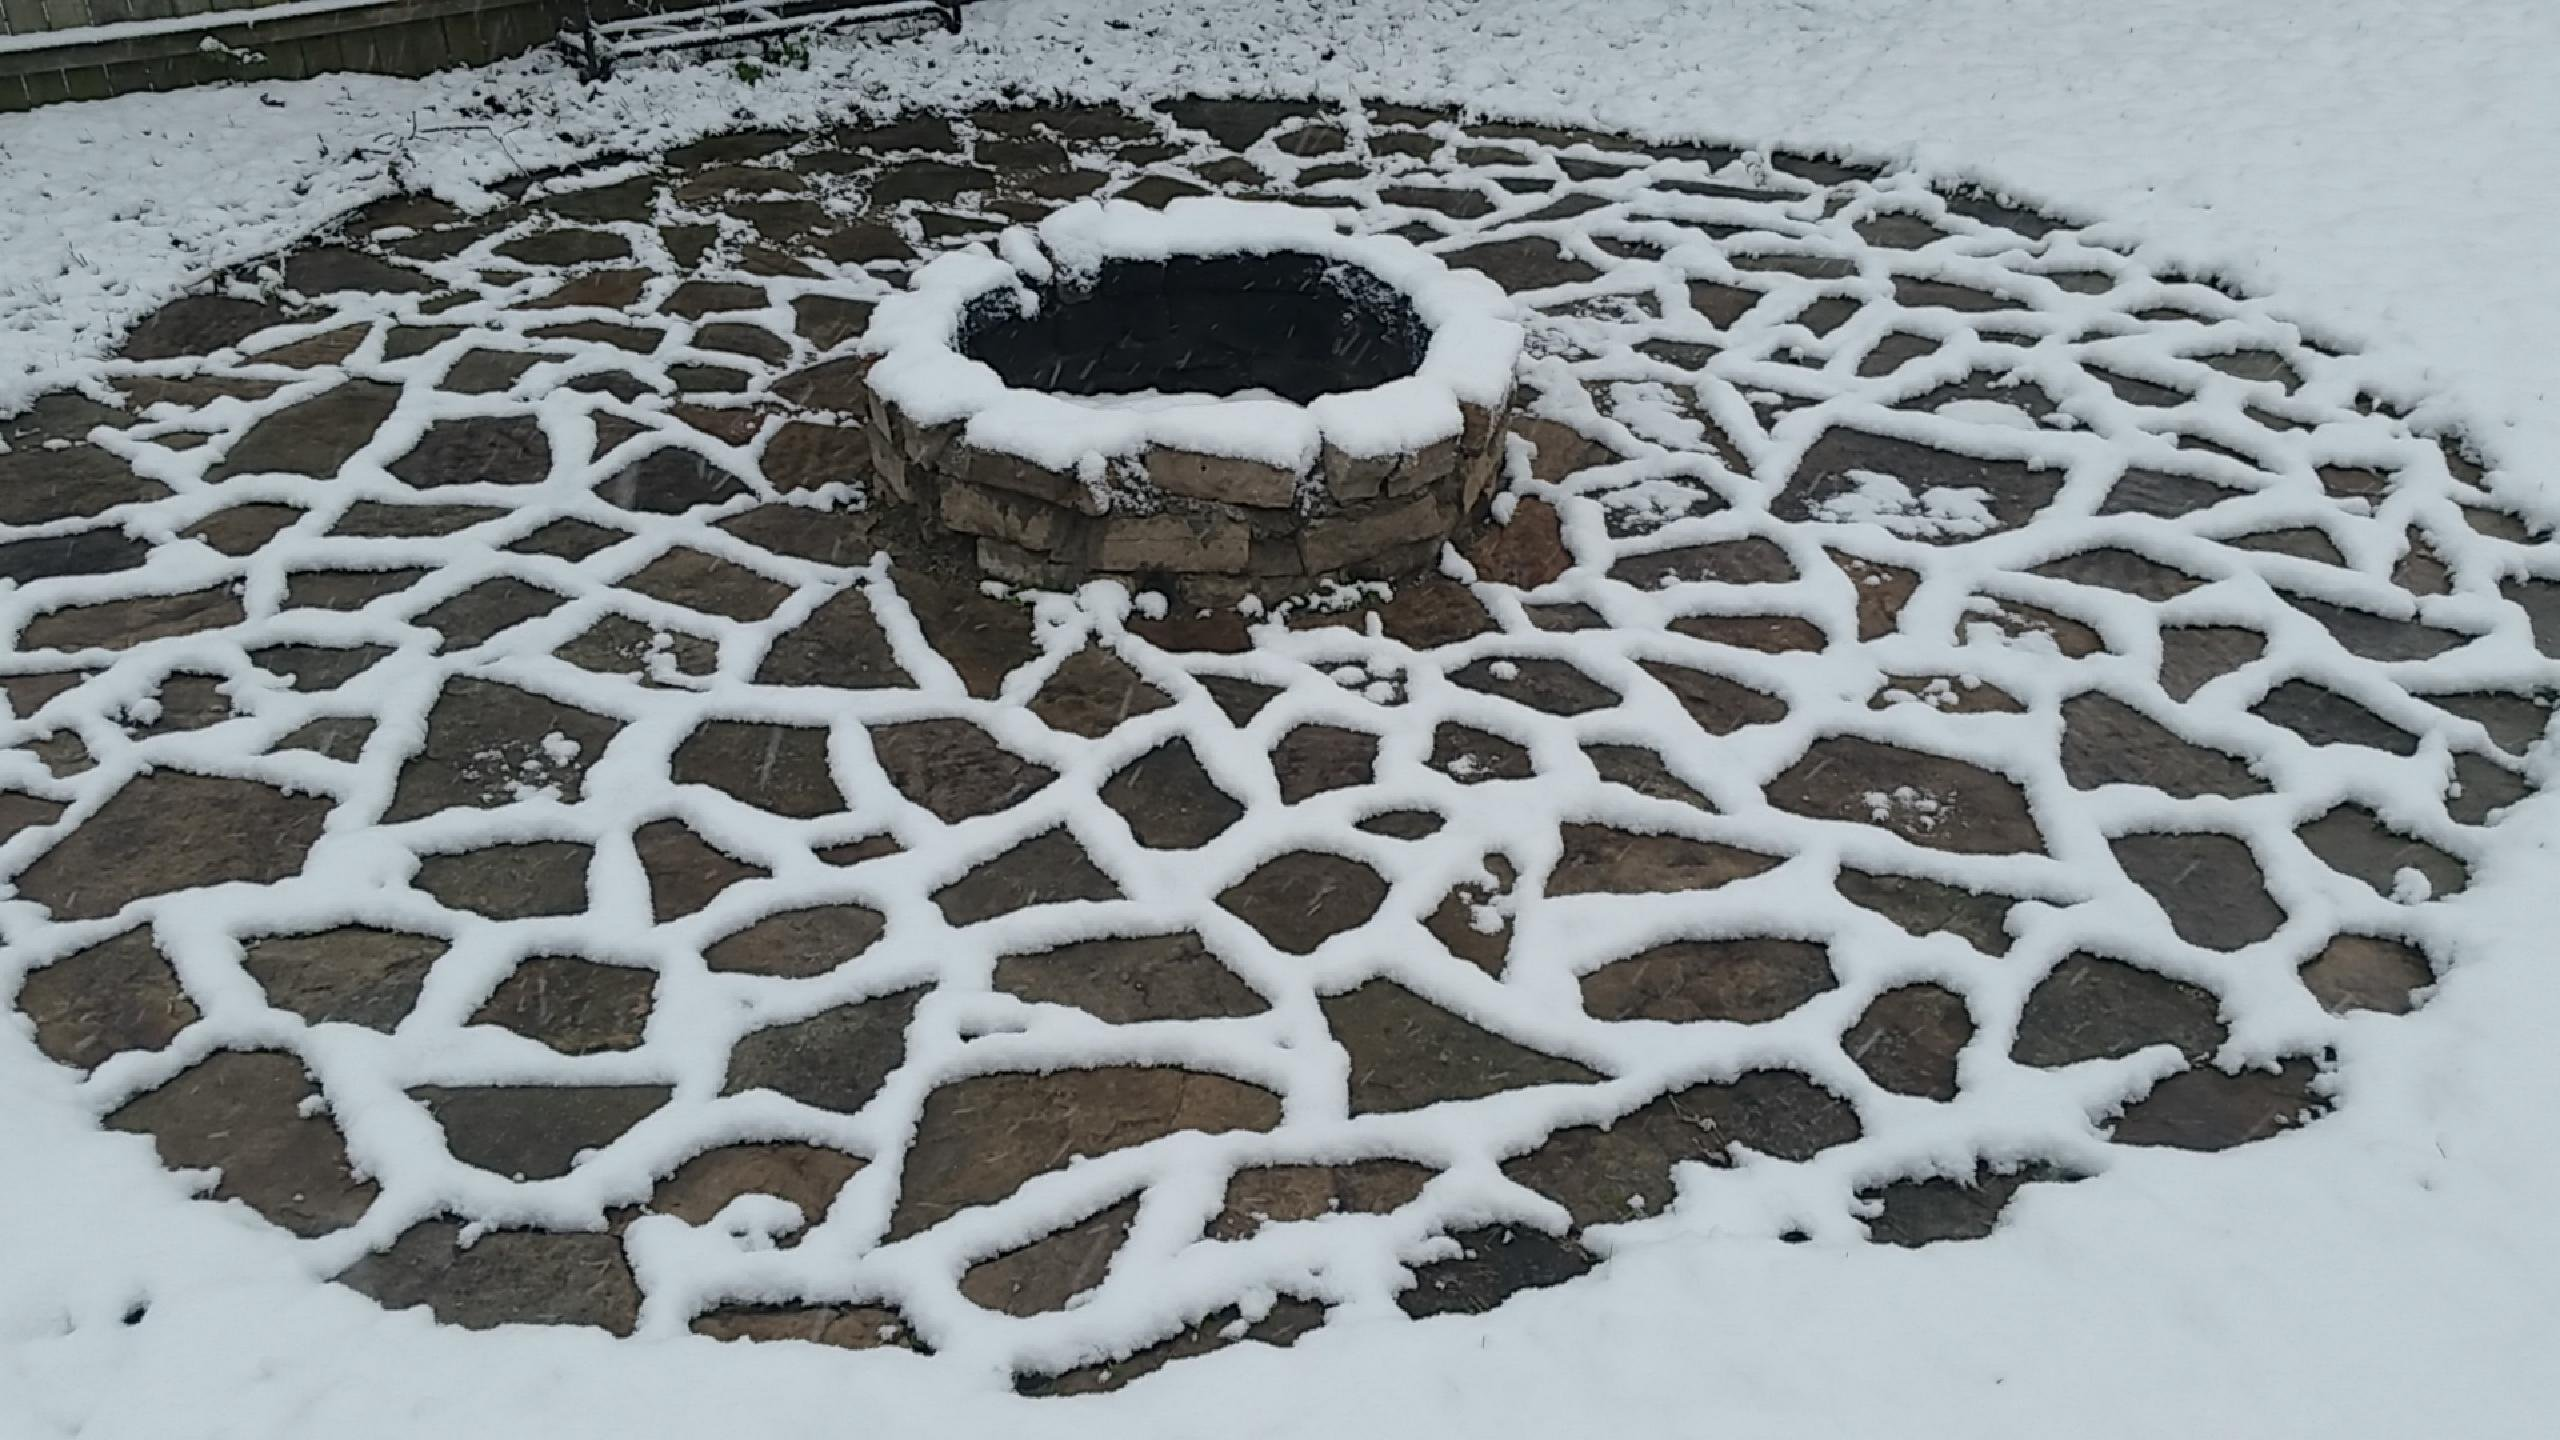 Snow at My Fire Pit wallpaper